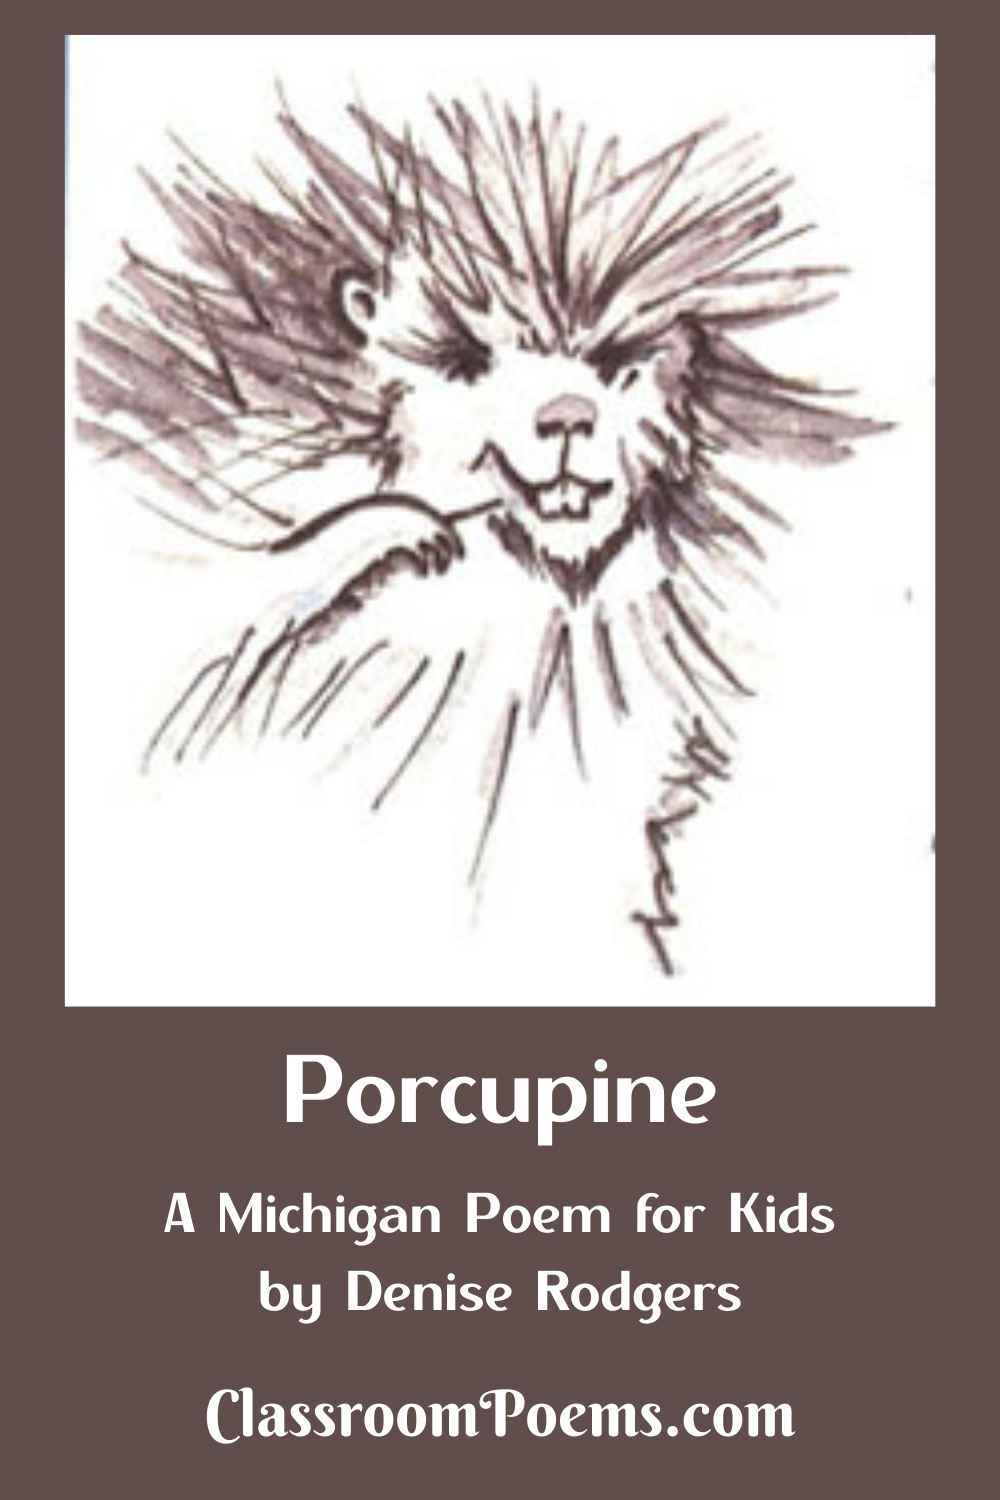 PORCUPINE drawing and poem by Denise Rodgers on ClassroomPoems.com.